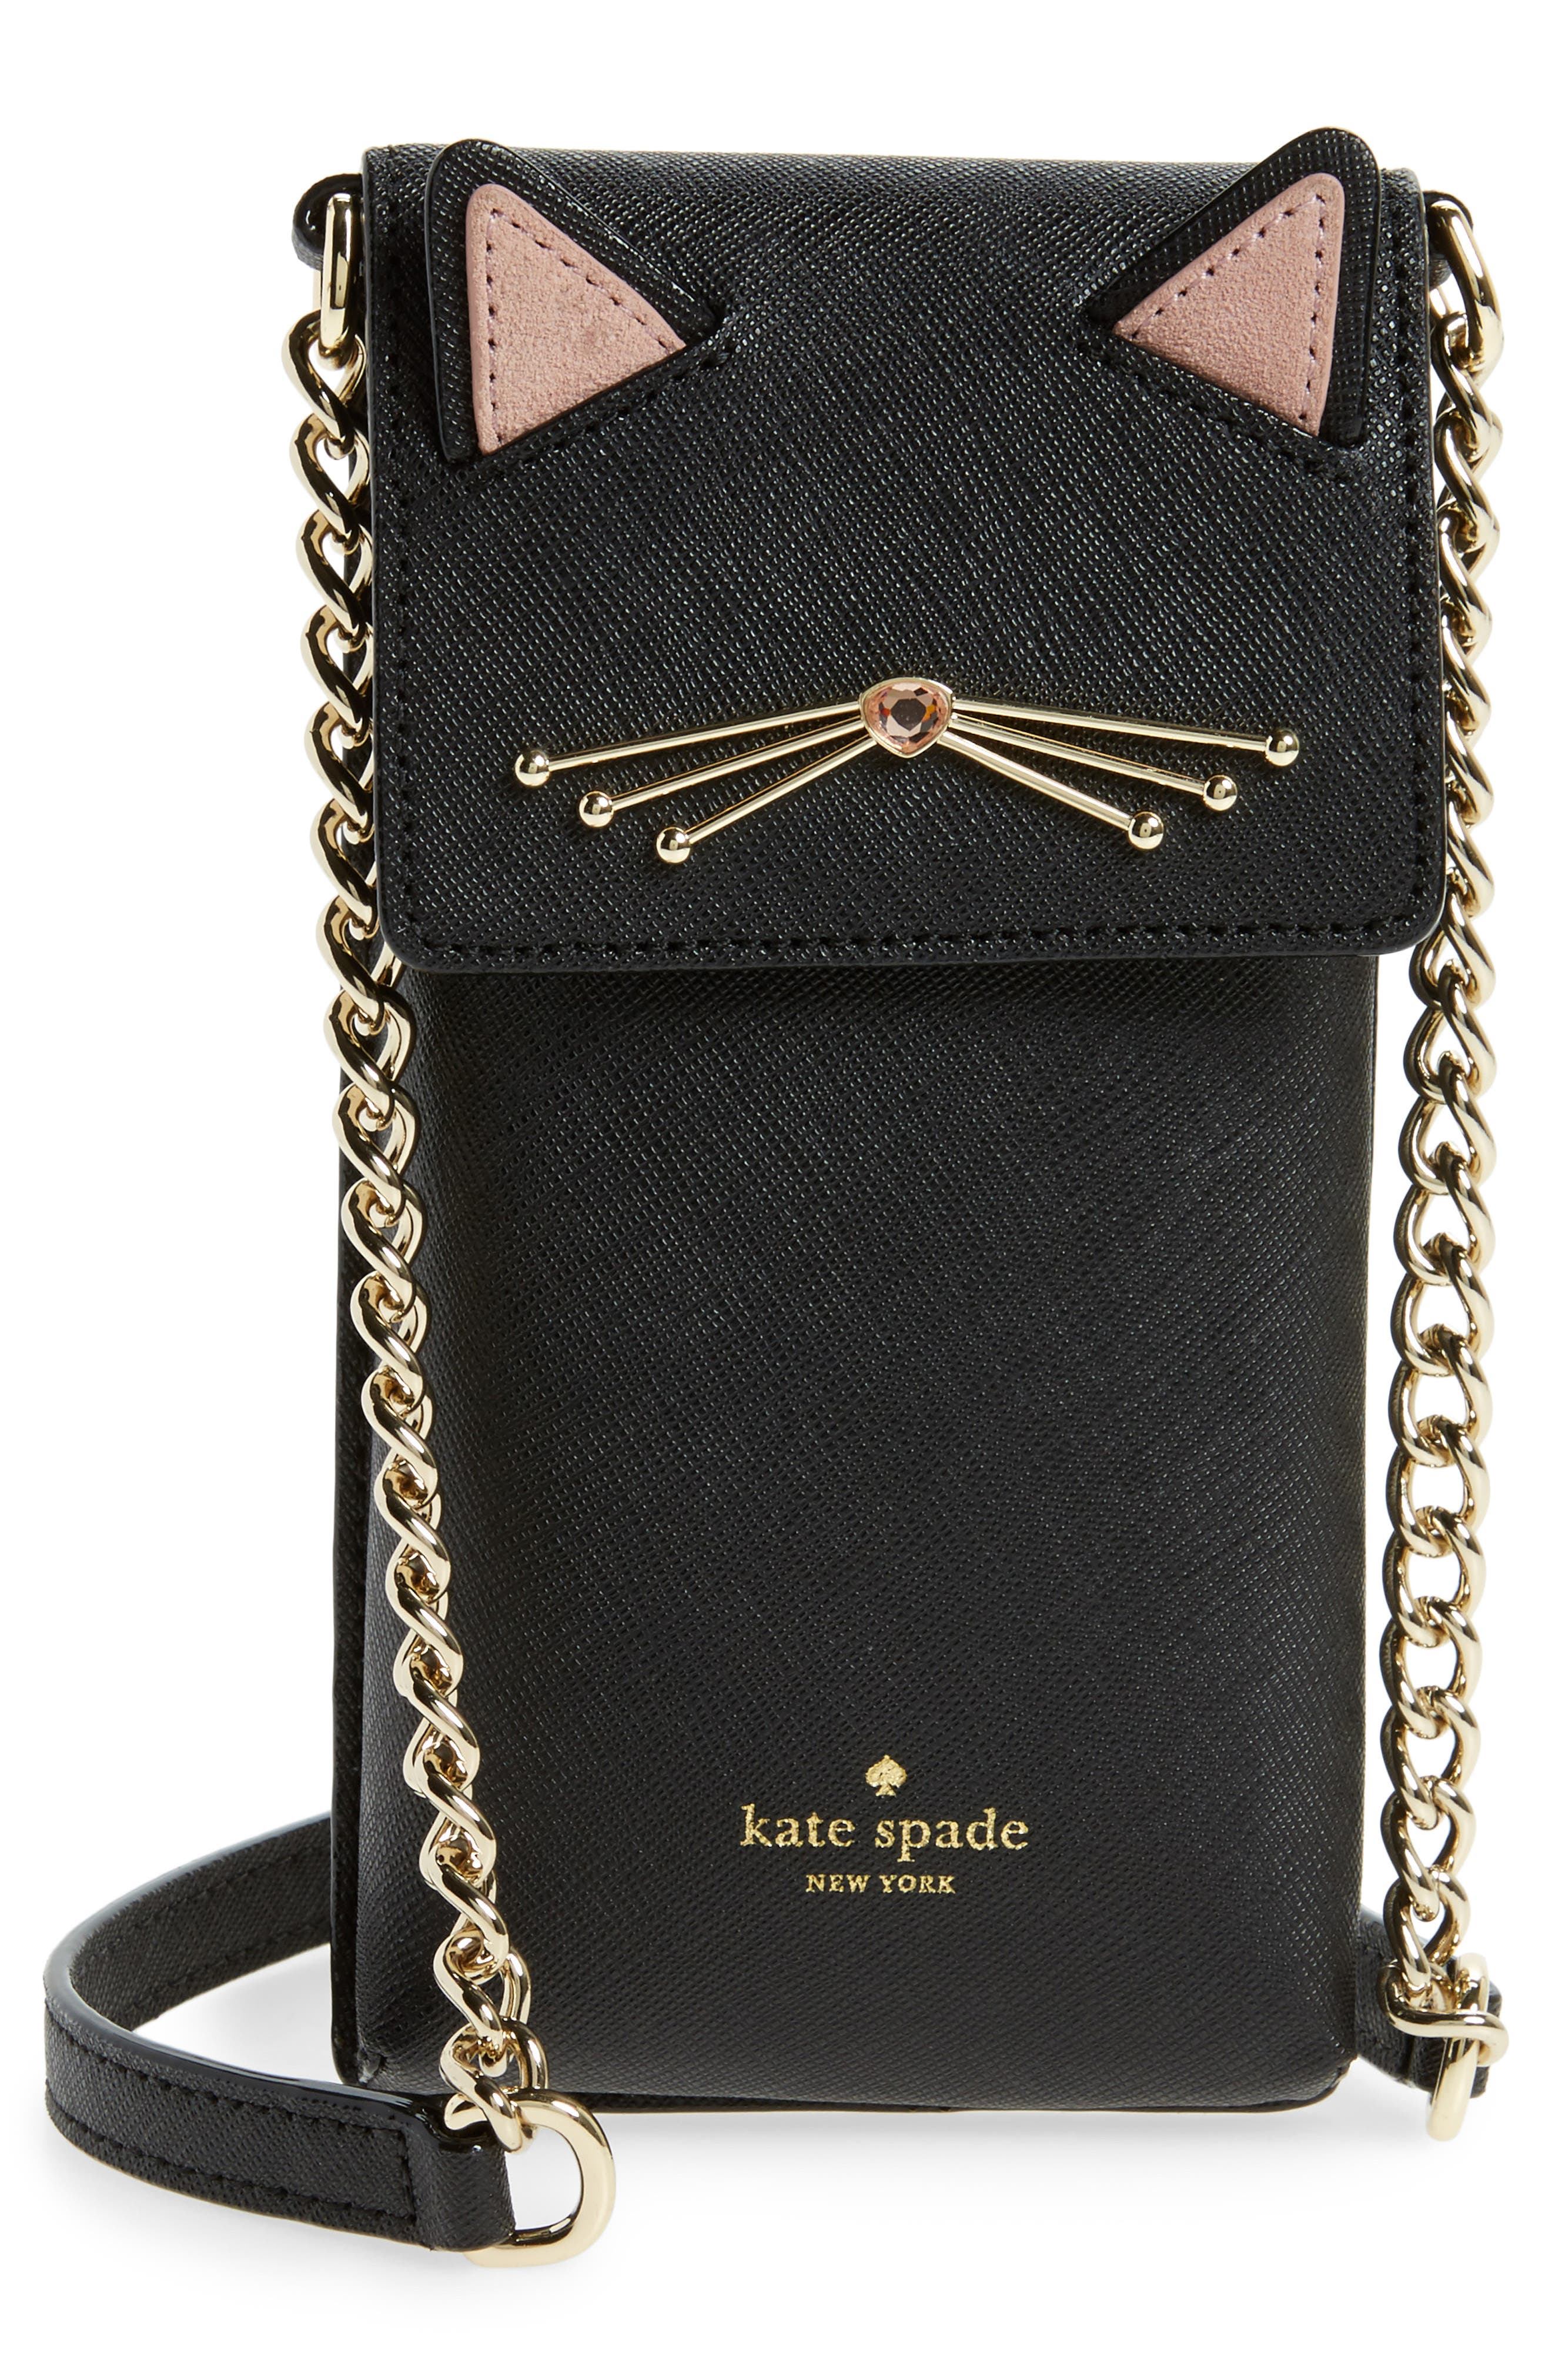 kate spade new york cat smartphone crossbody bag (Nordstrom Exclusive)